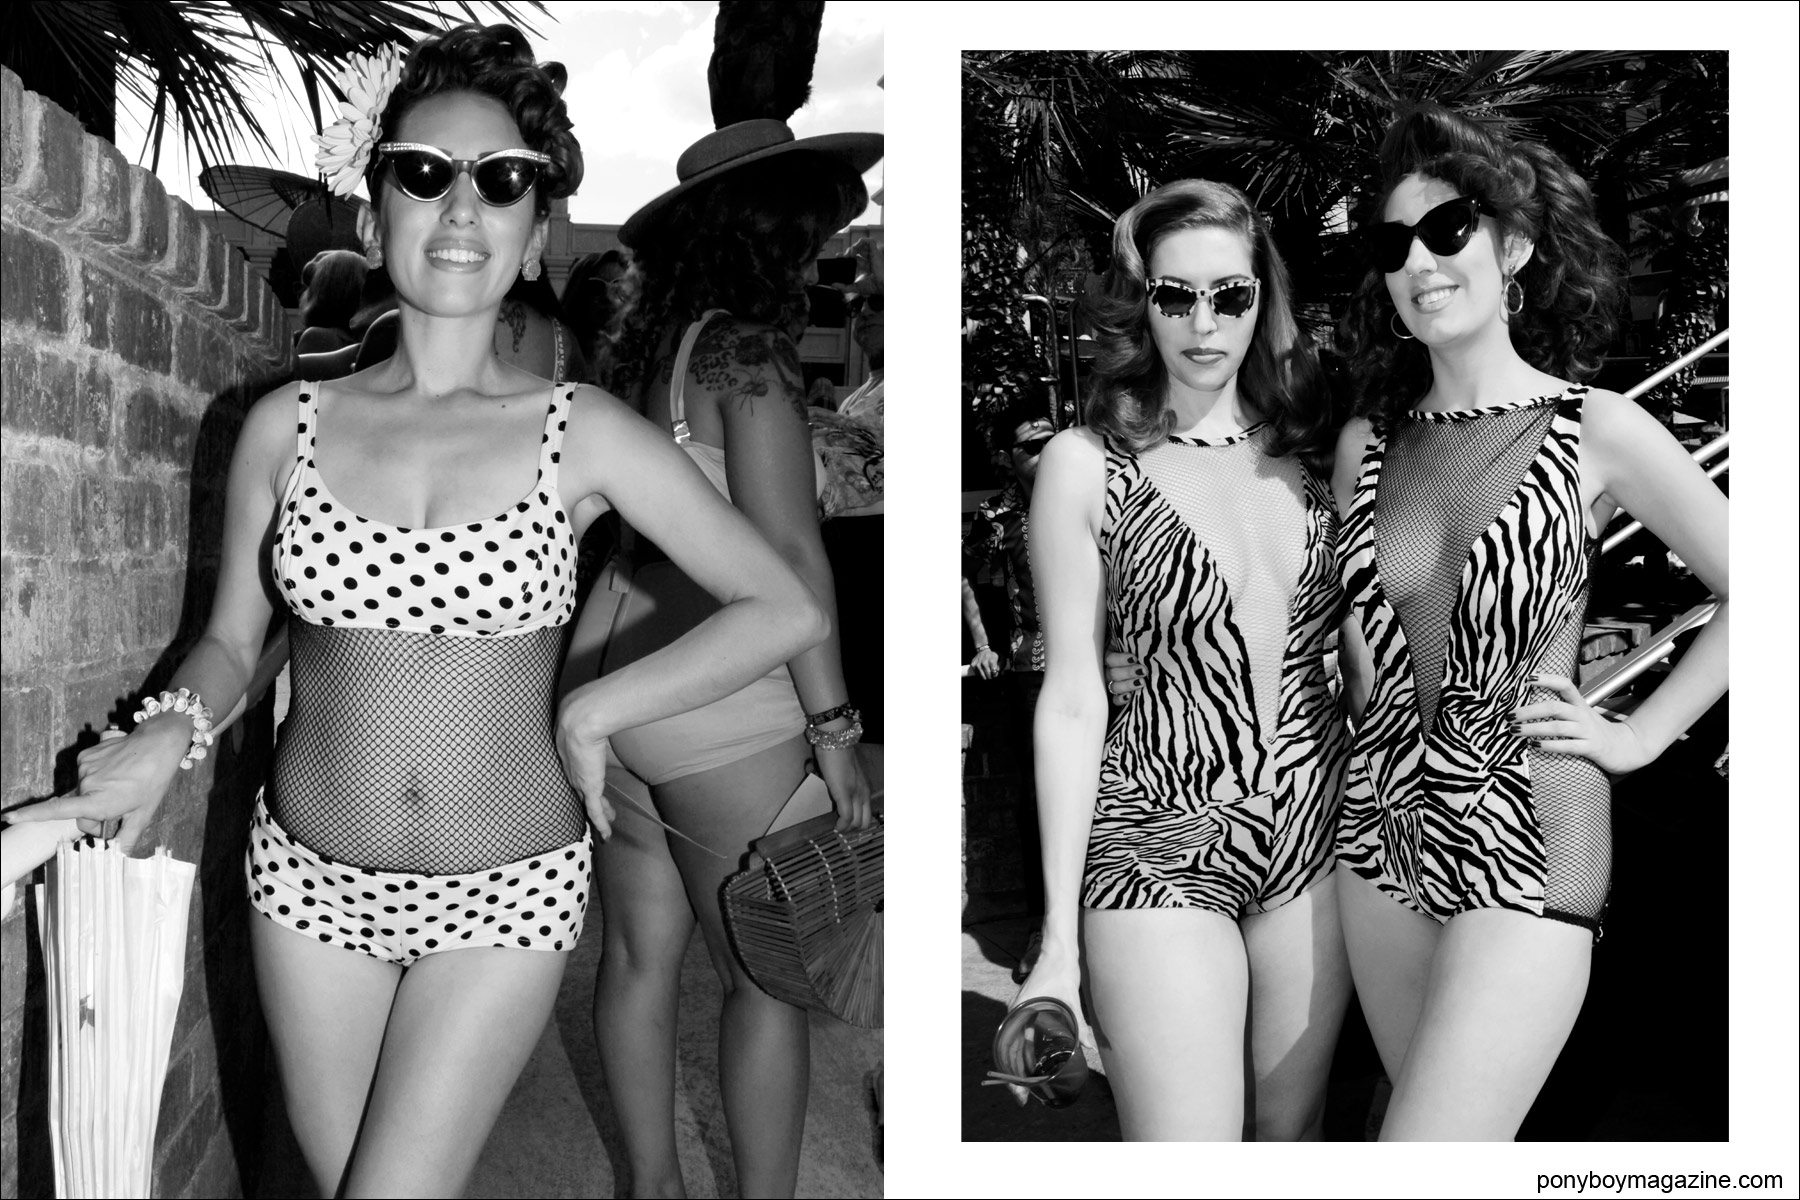 Vintage 1950's exotic women's swimwear photographed by Ponyboy Magazine photographer Alexander Thompson at Viva Las Vegas rockabilly pool party.